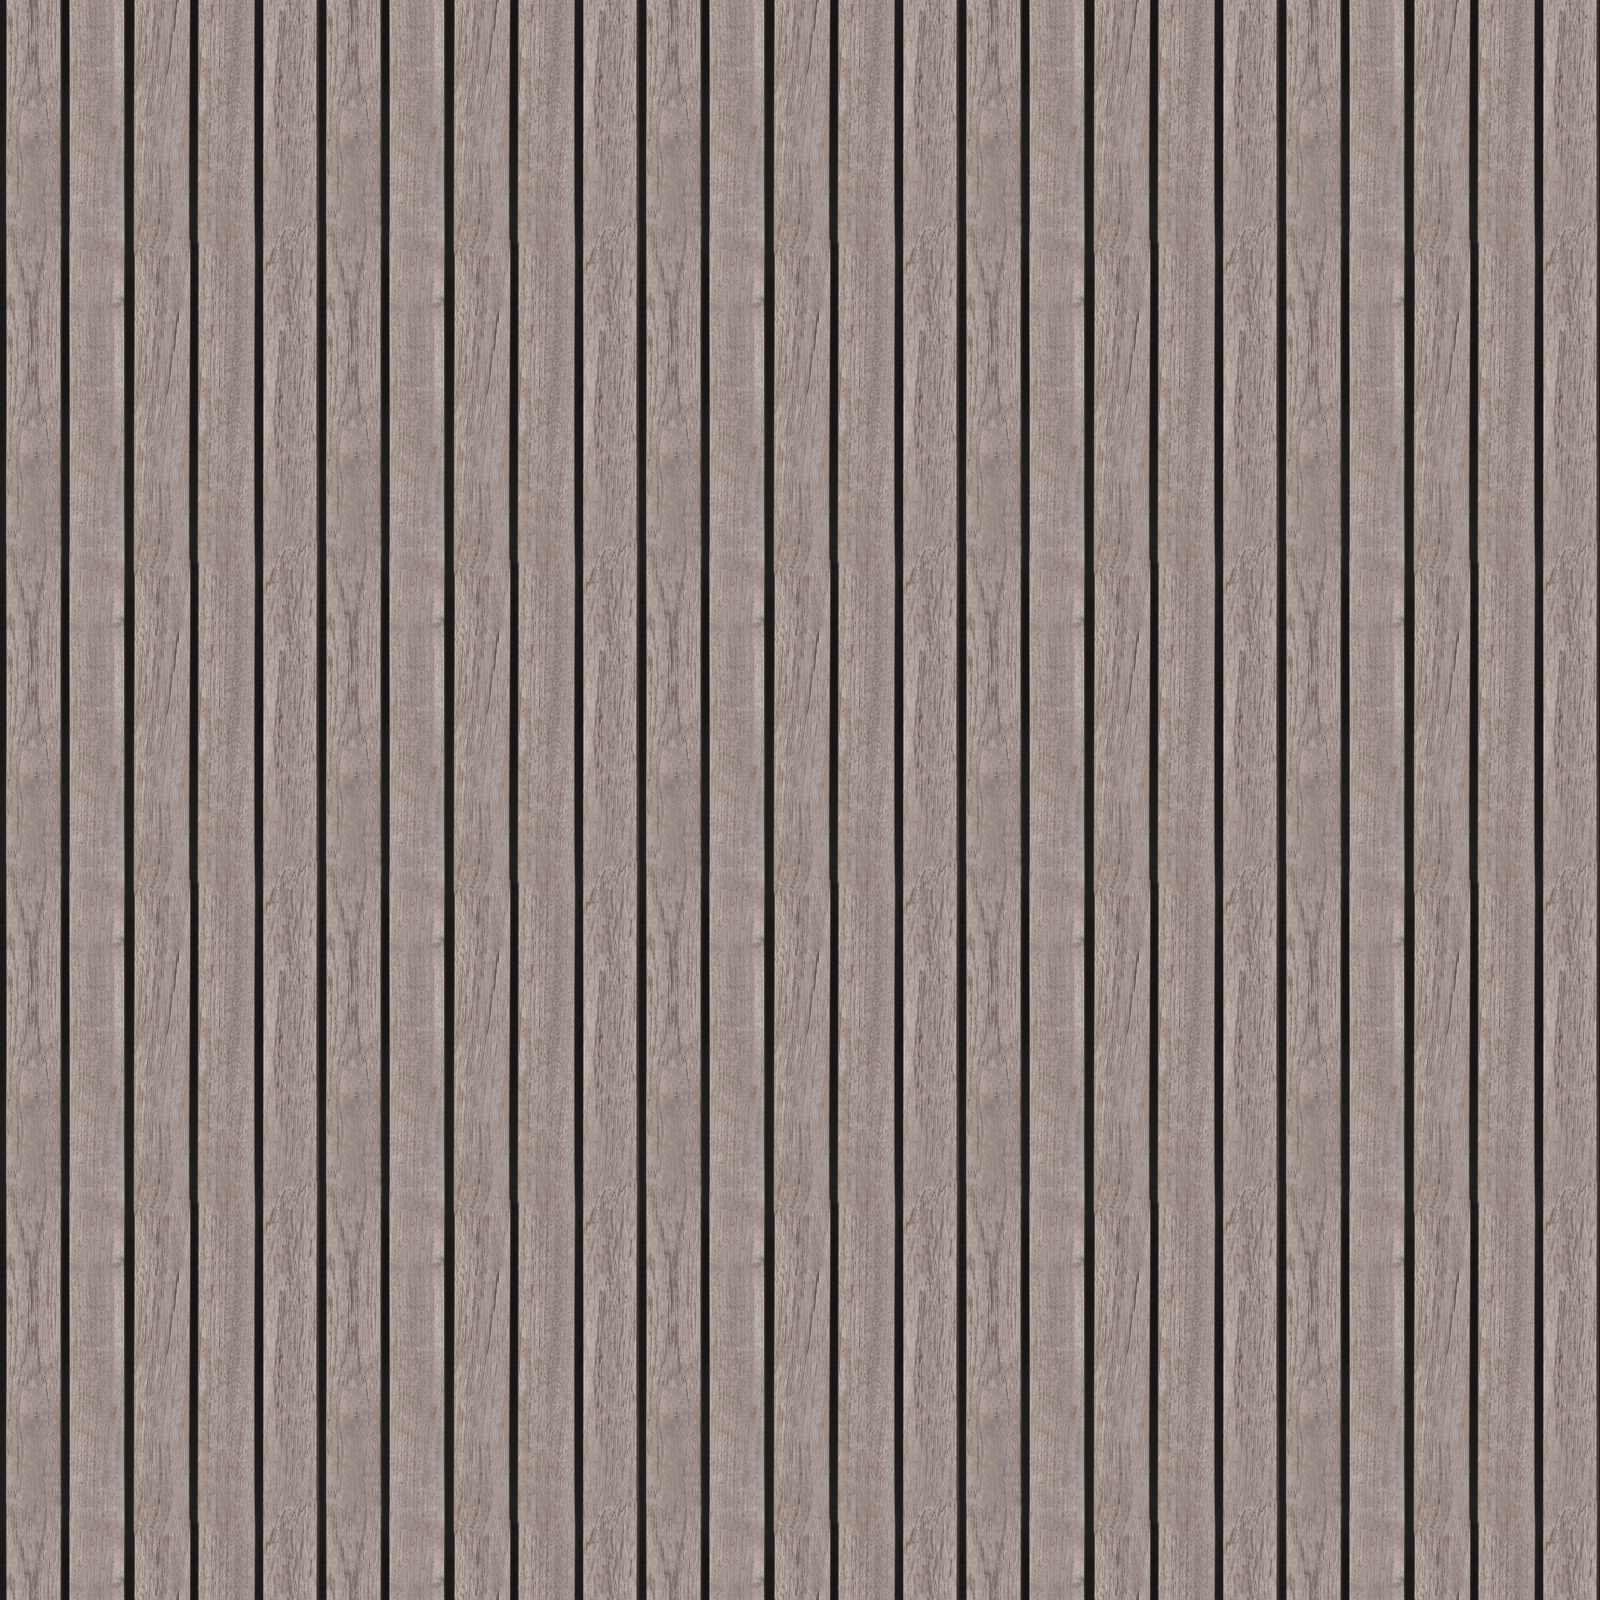 Taupe Wood Planks Seamless Texture